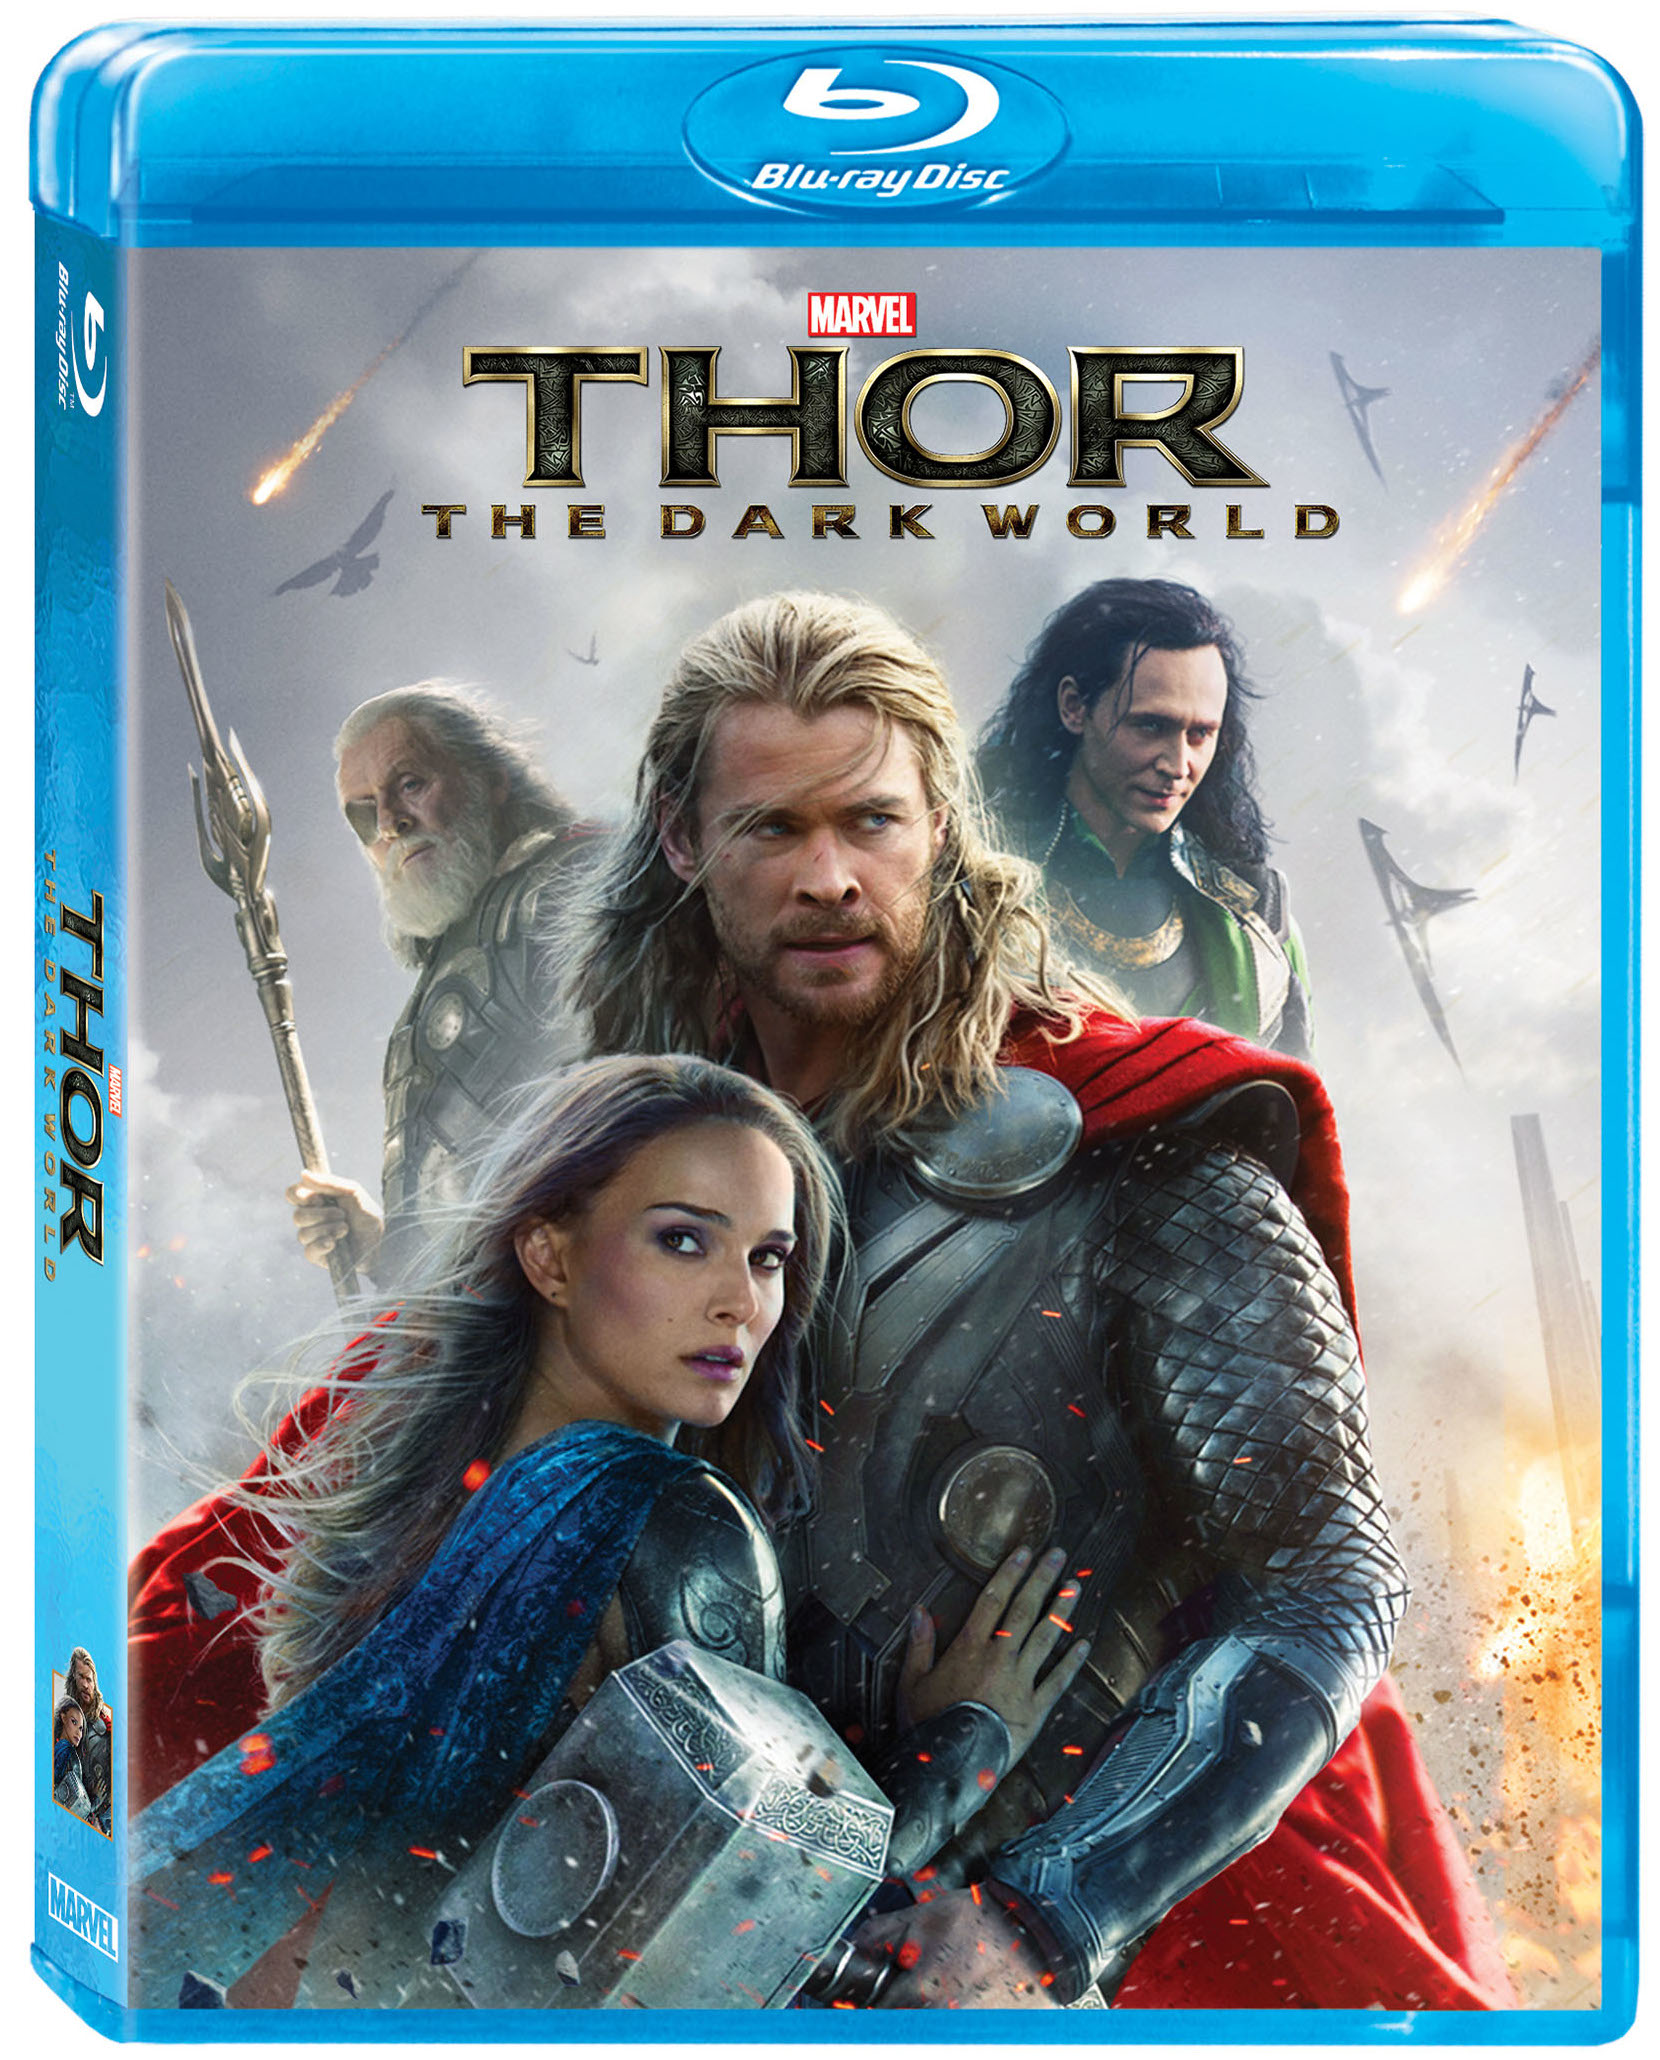 marvel's thor: the dark world coming to blu-ray/dvd, 3-d, and hd soon